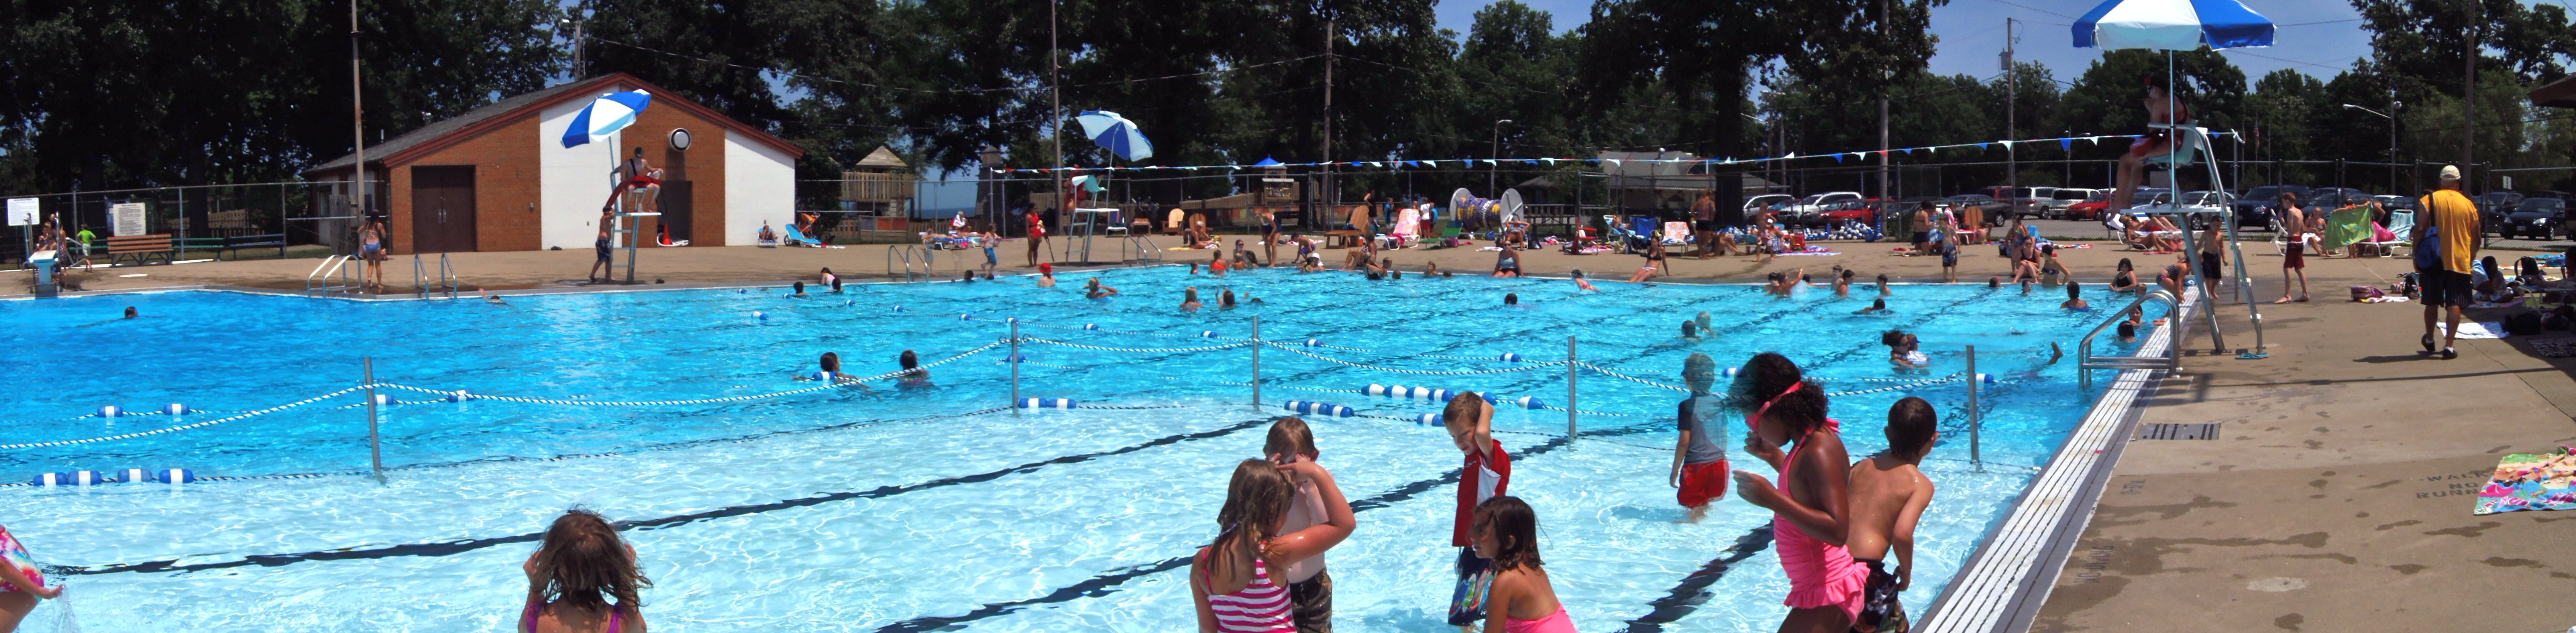 Safe and fun summer at Foster Pool